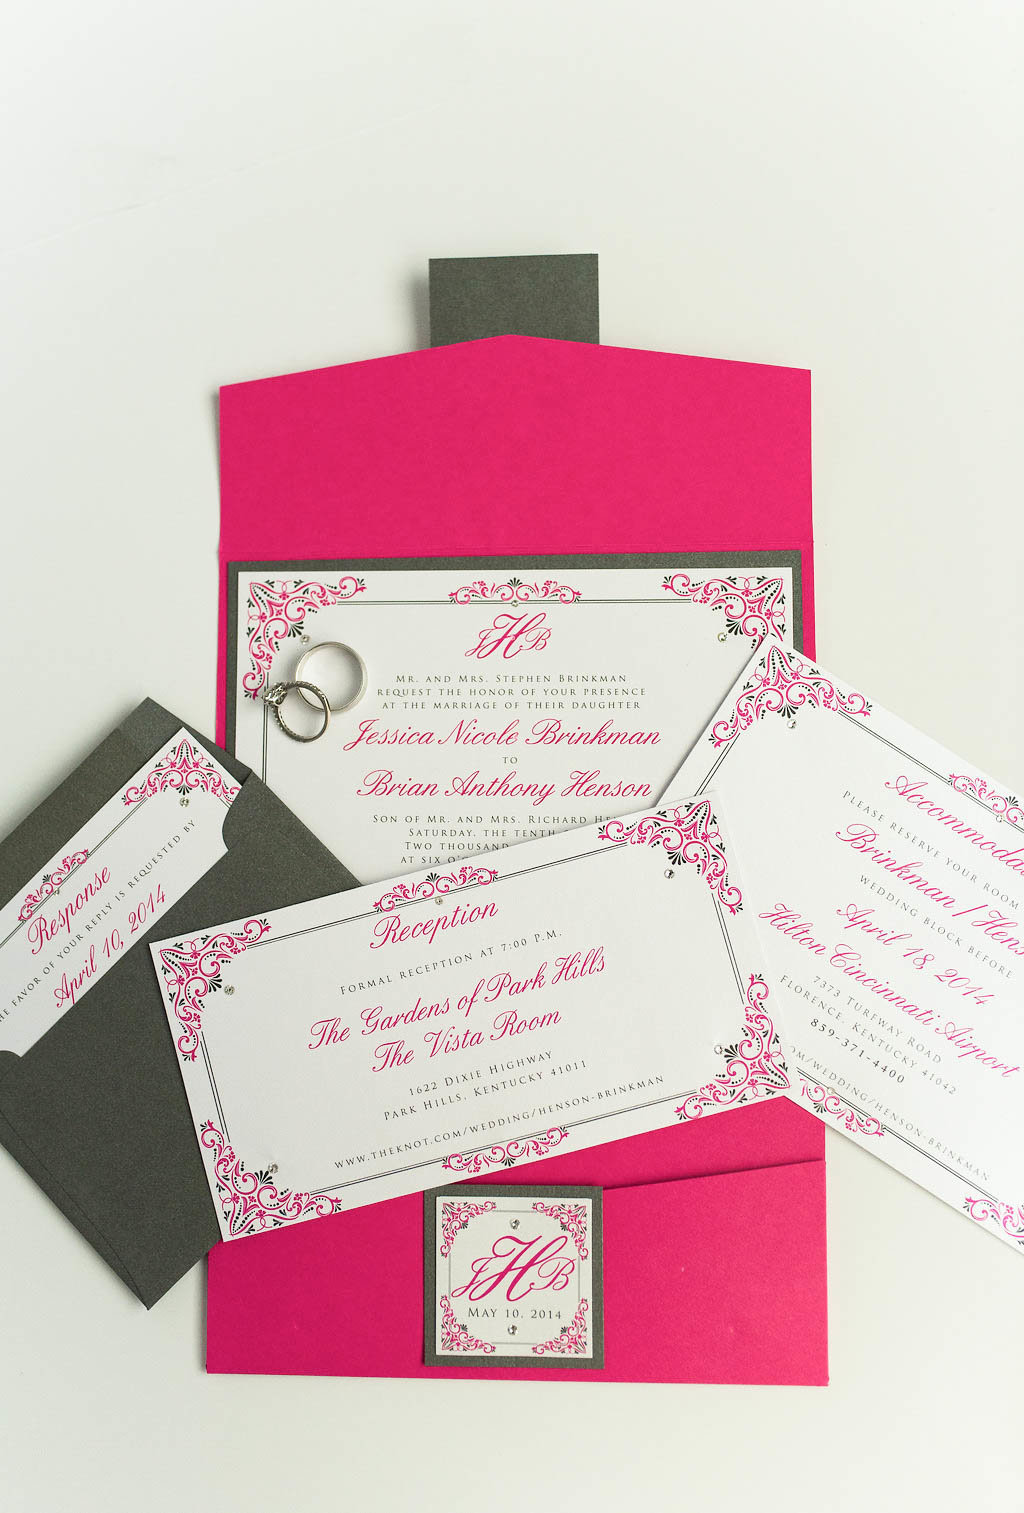 Melissa Arey - Hello Invite Design Studio - Photo -1014